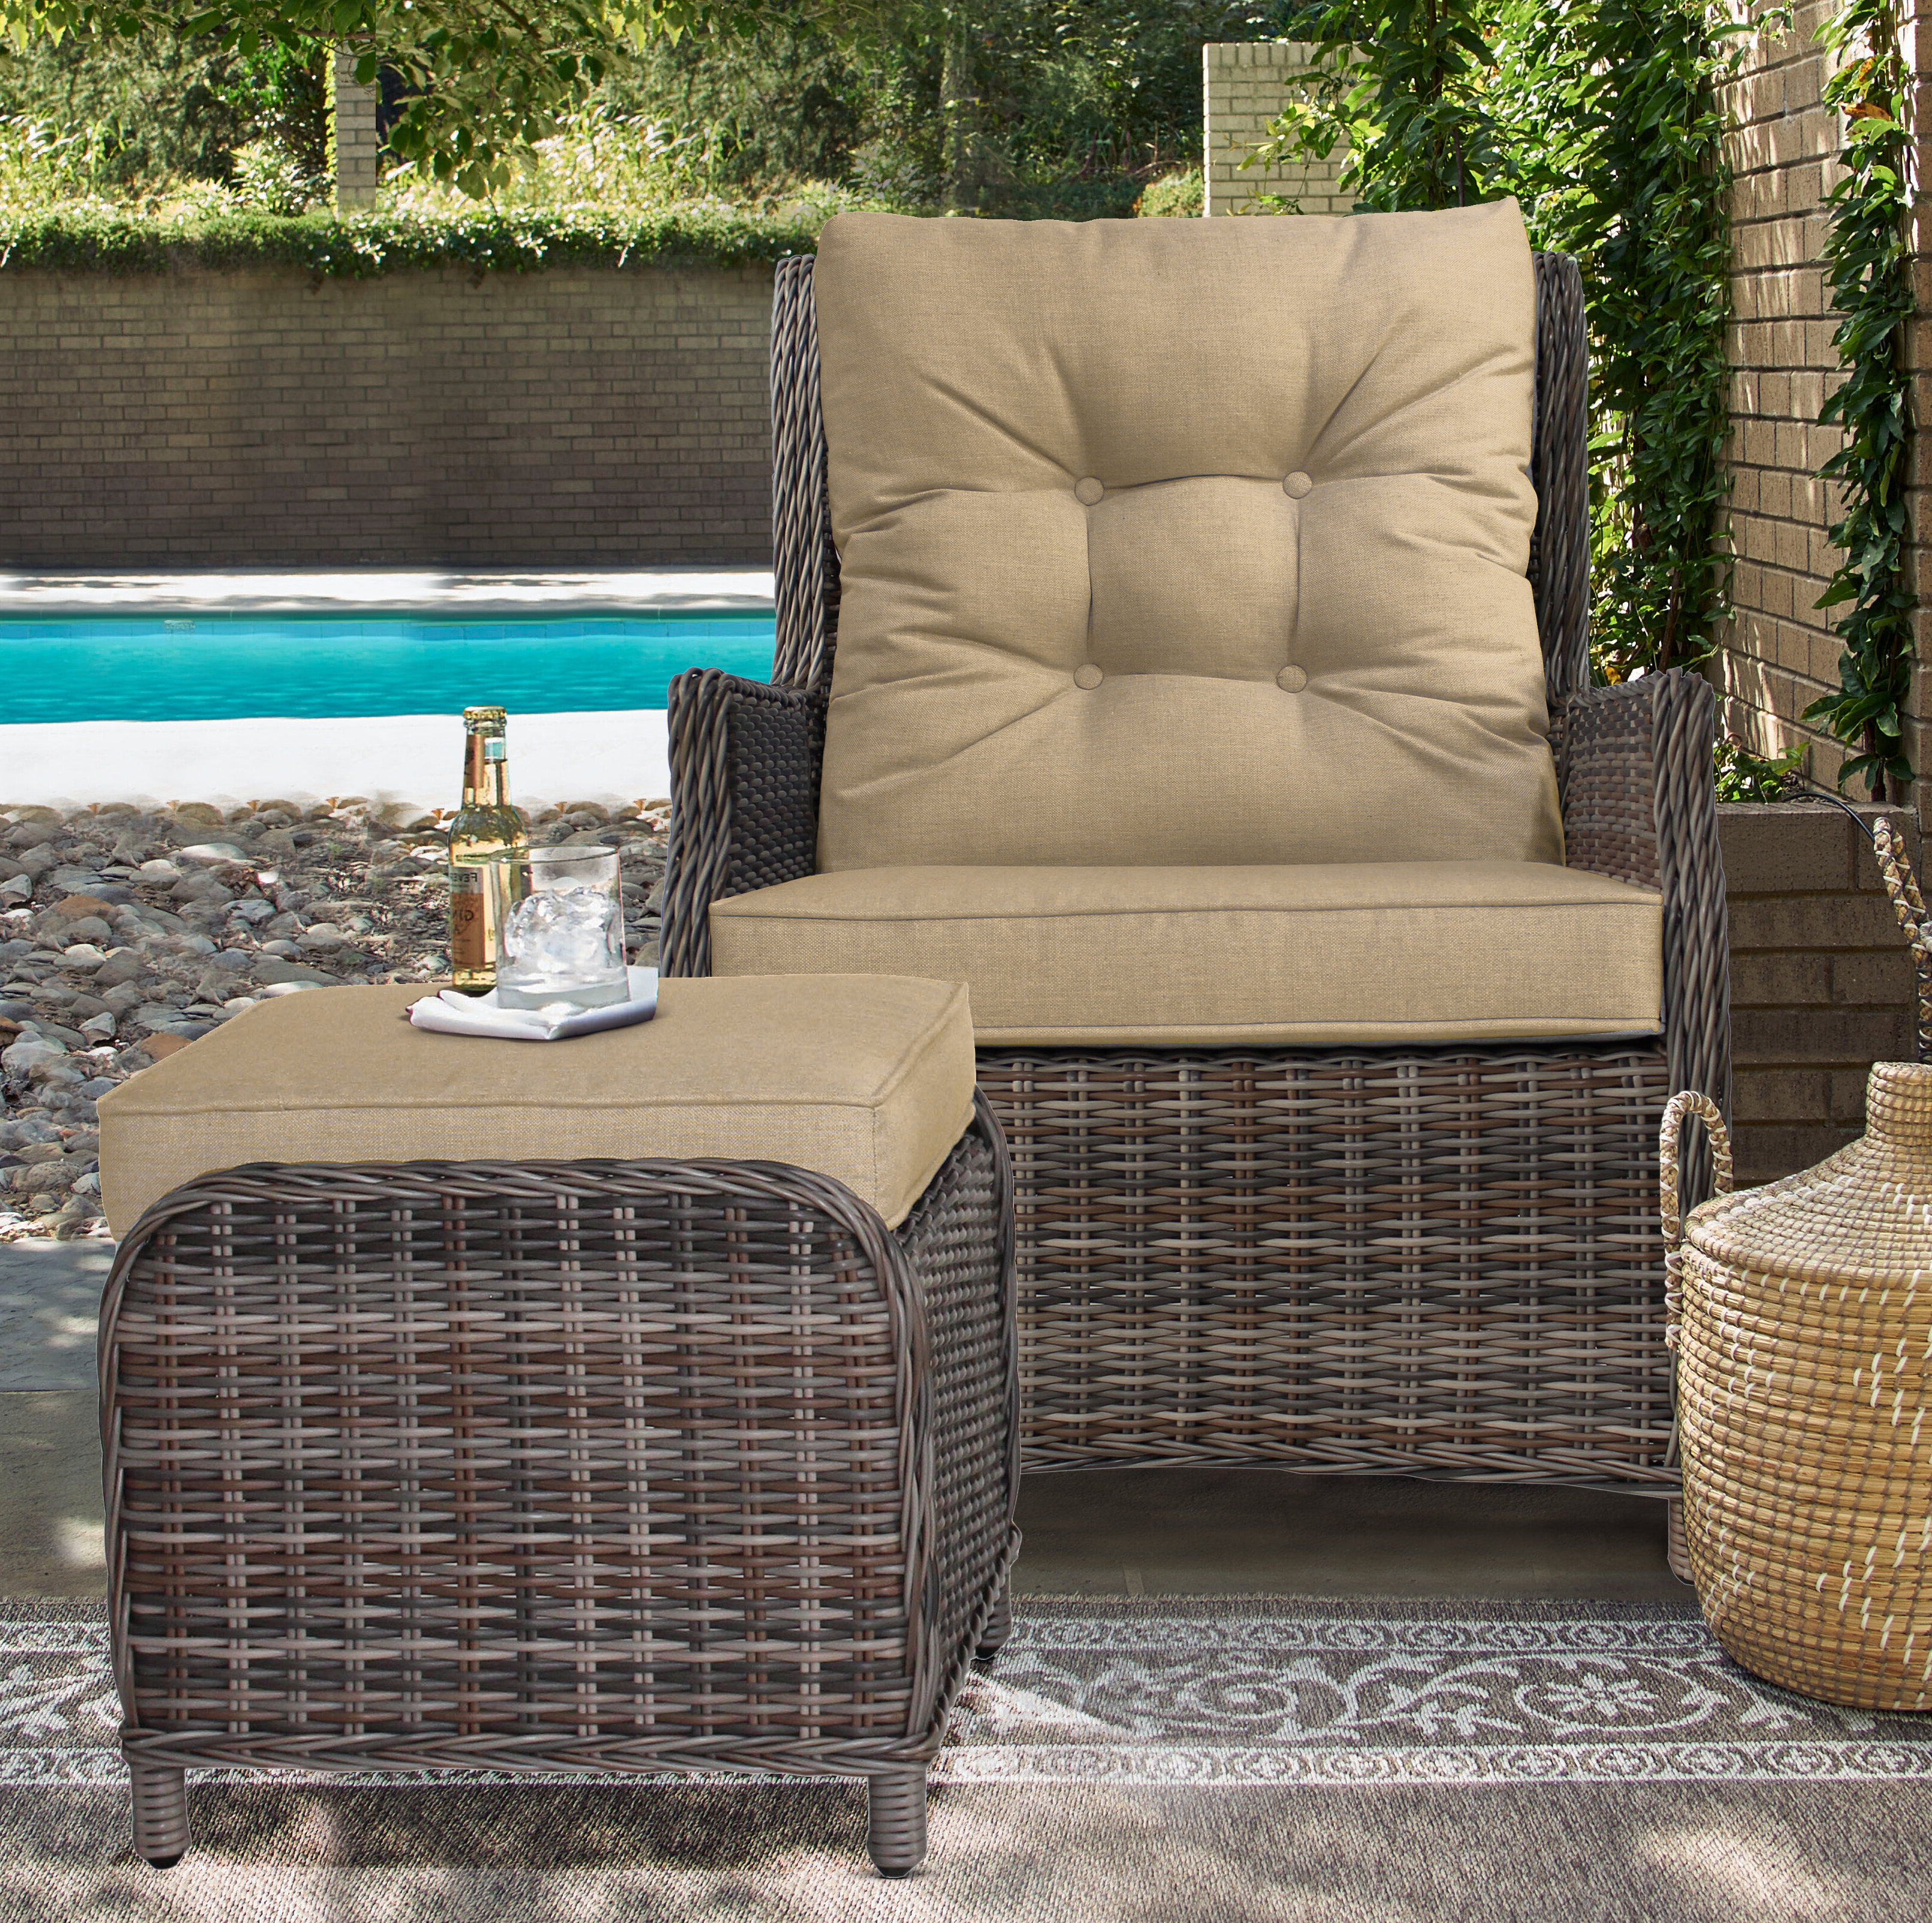 Well Liked Avadi Outdoor Sofas & Ottomans 3 Piece Set Regarding Darby Home Co Cardoza Outdoor Recliner Patio Chair With (View 21 of 25)